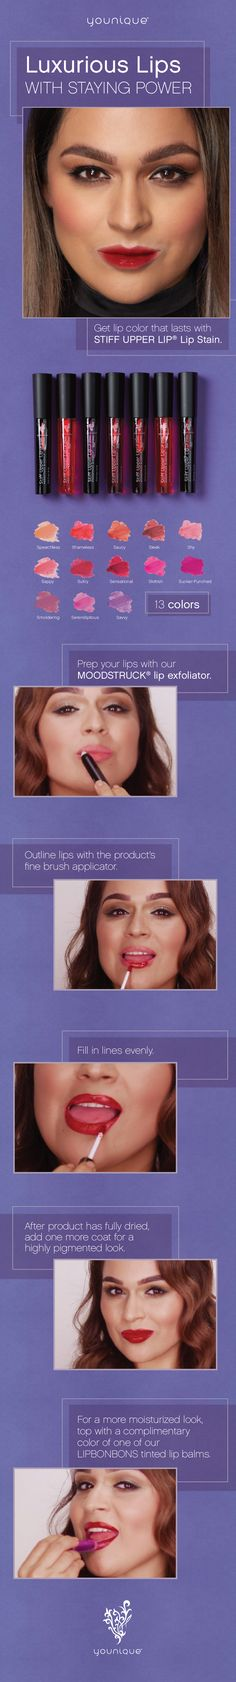 Luxurious Lips with Staying Power